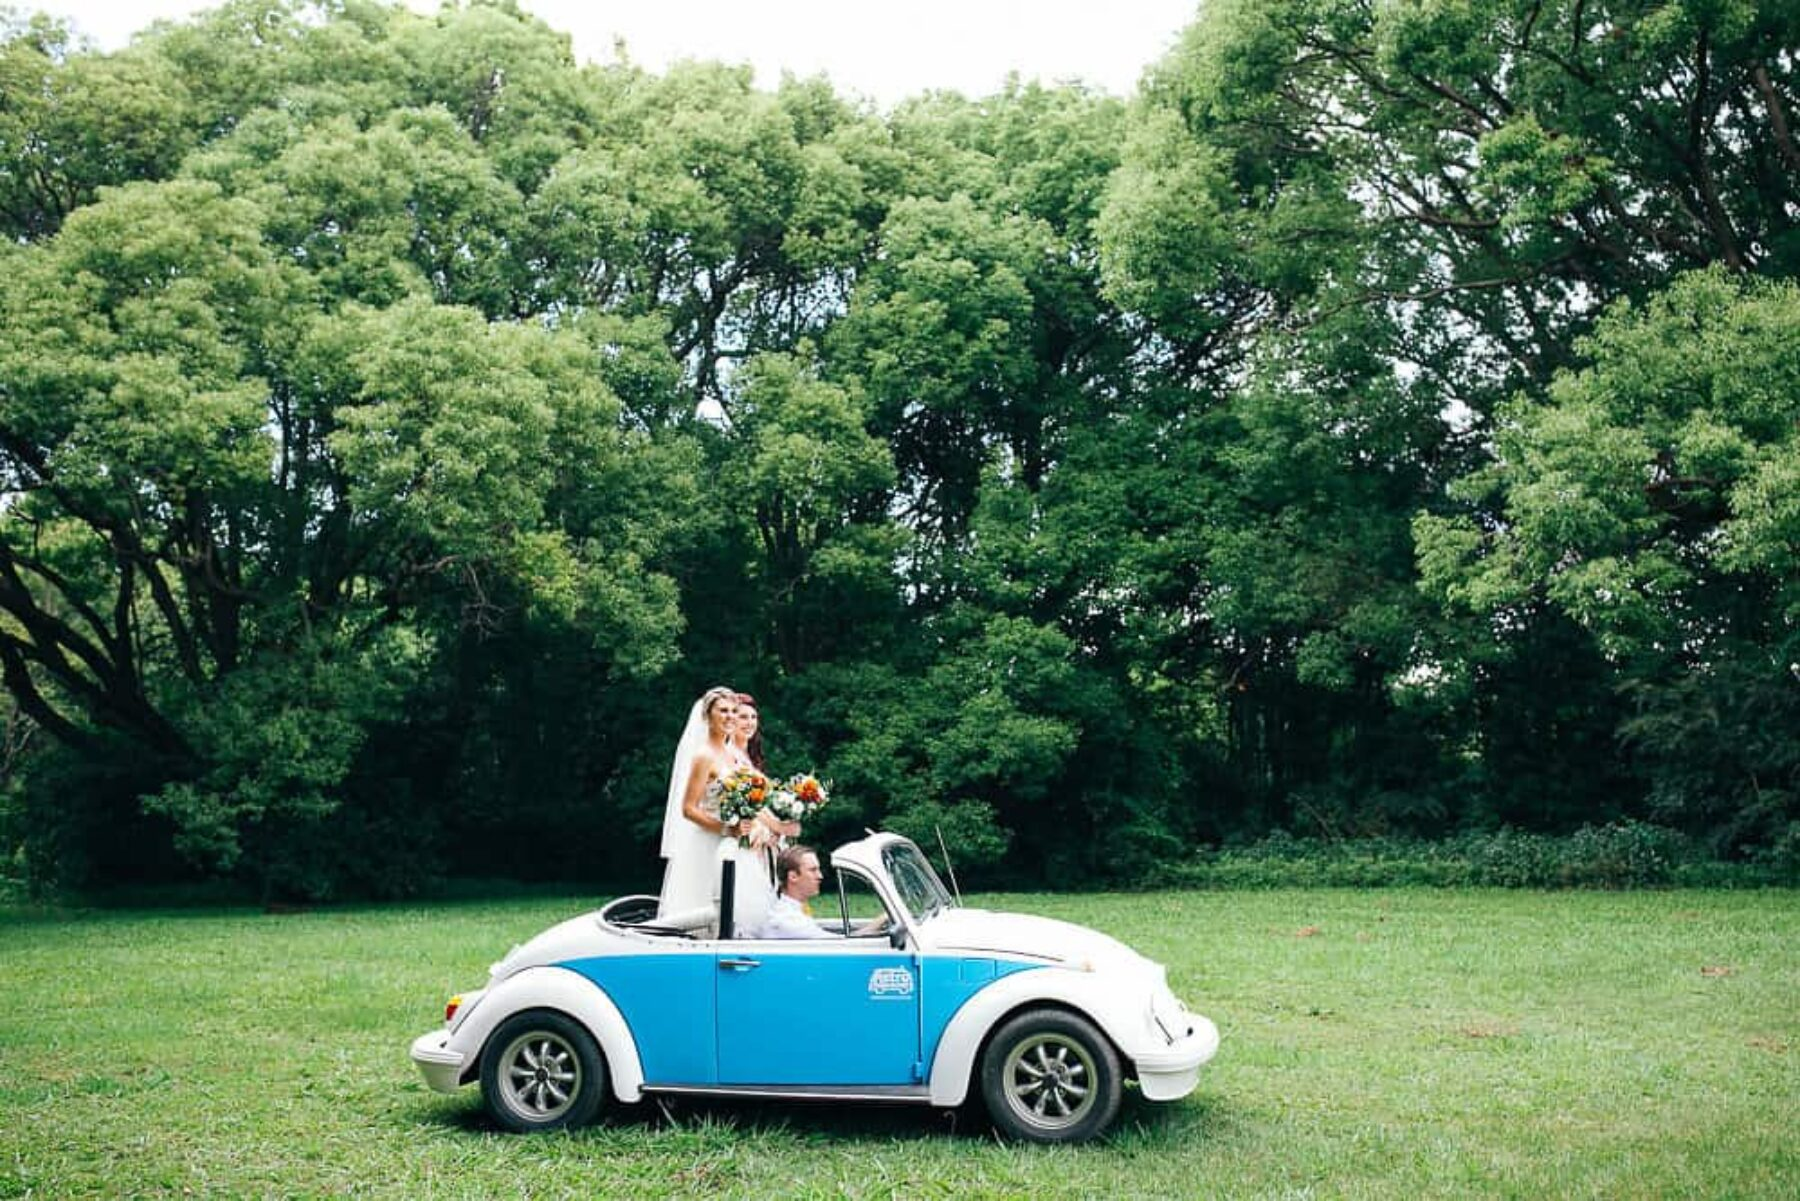 vintage buggy wedding car